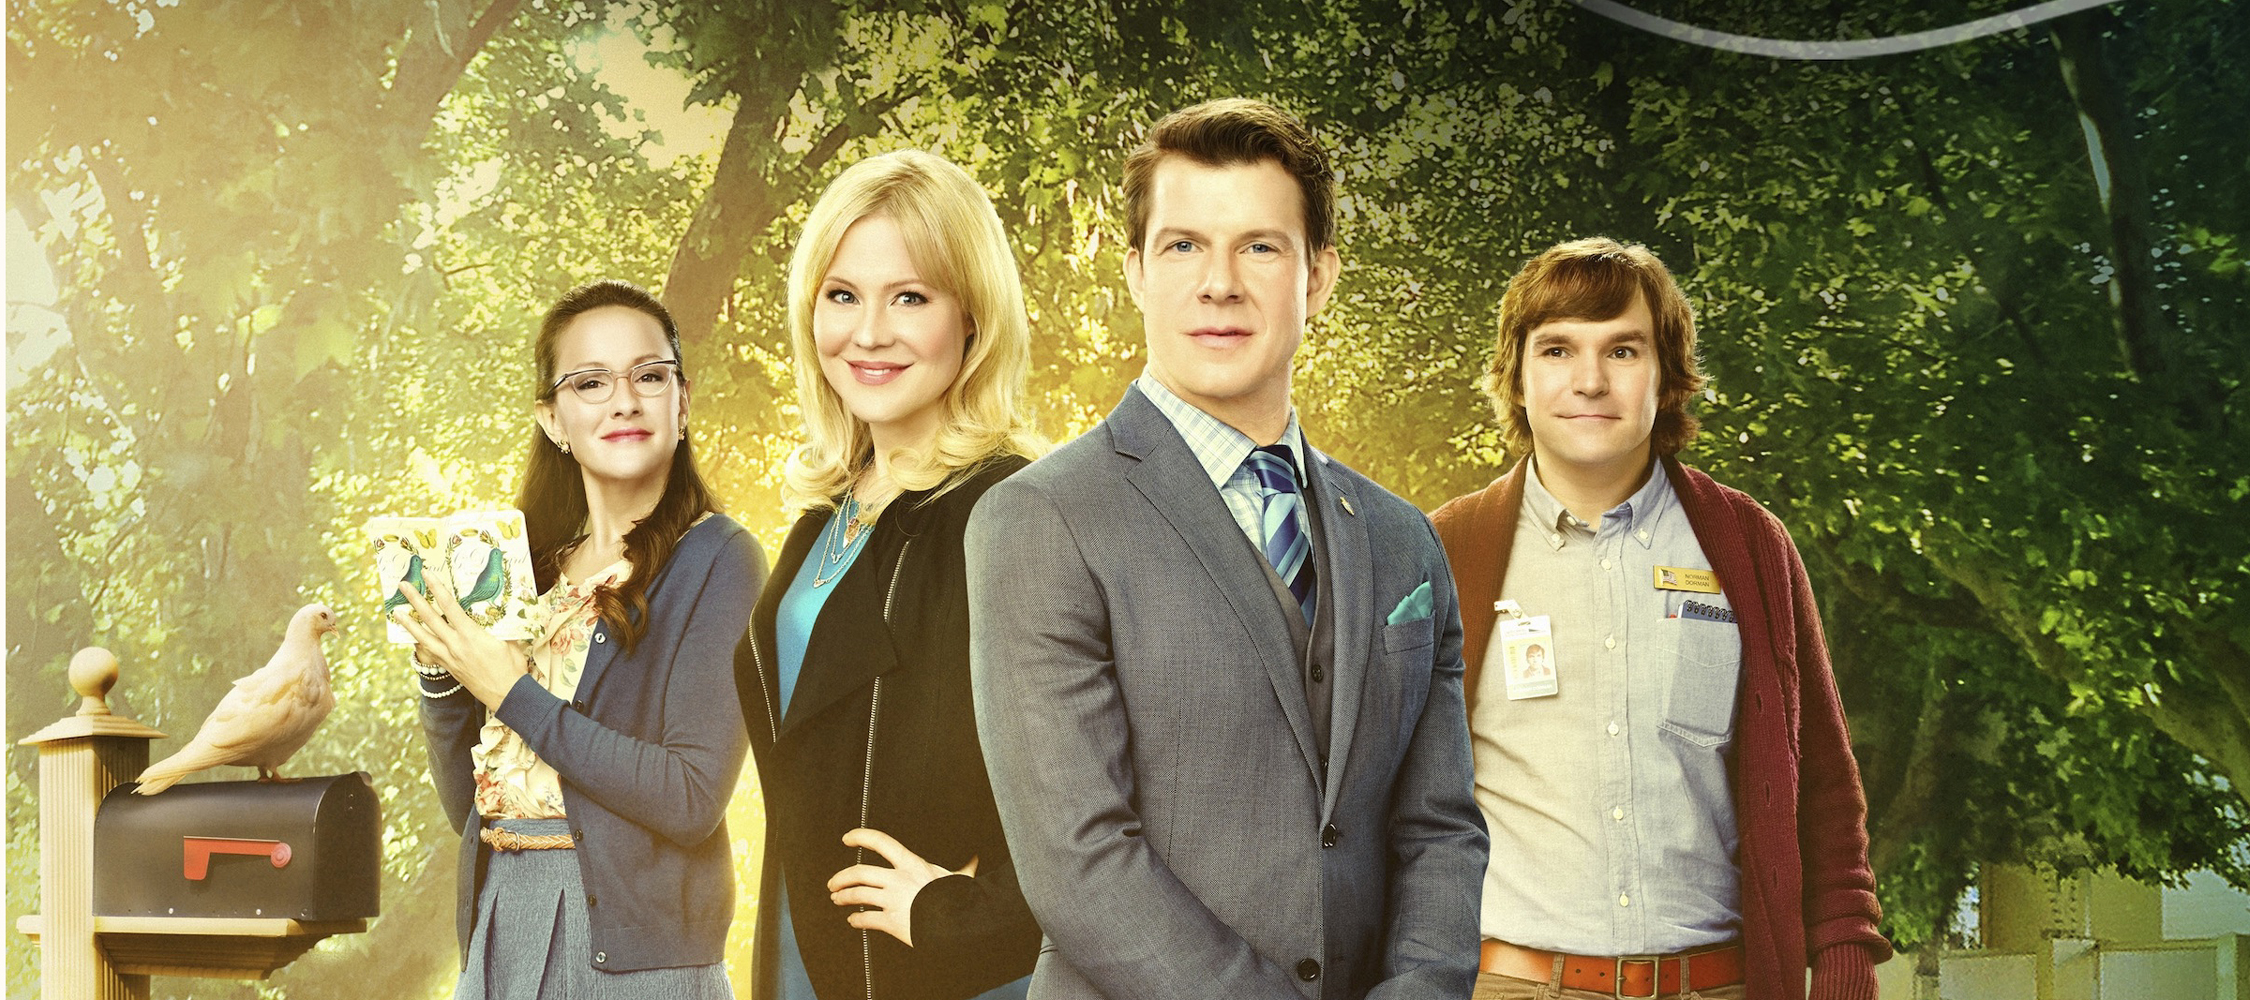 MOVIES 24 PICKS UP UK RIGHTS TO HALLMARK'S 'SIGNED, SEALED, DELIVERED'